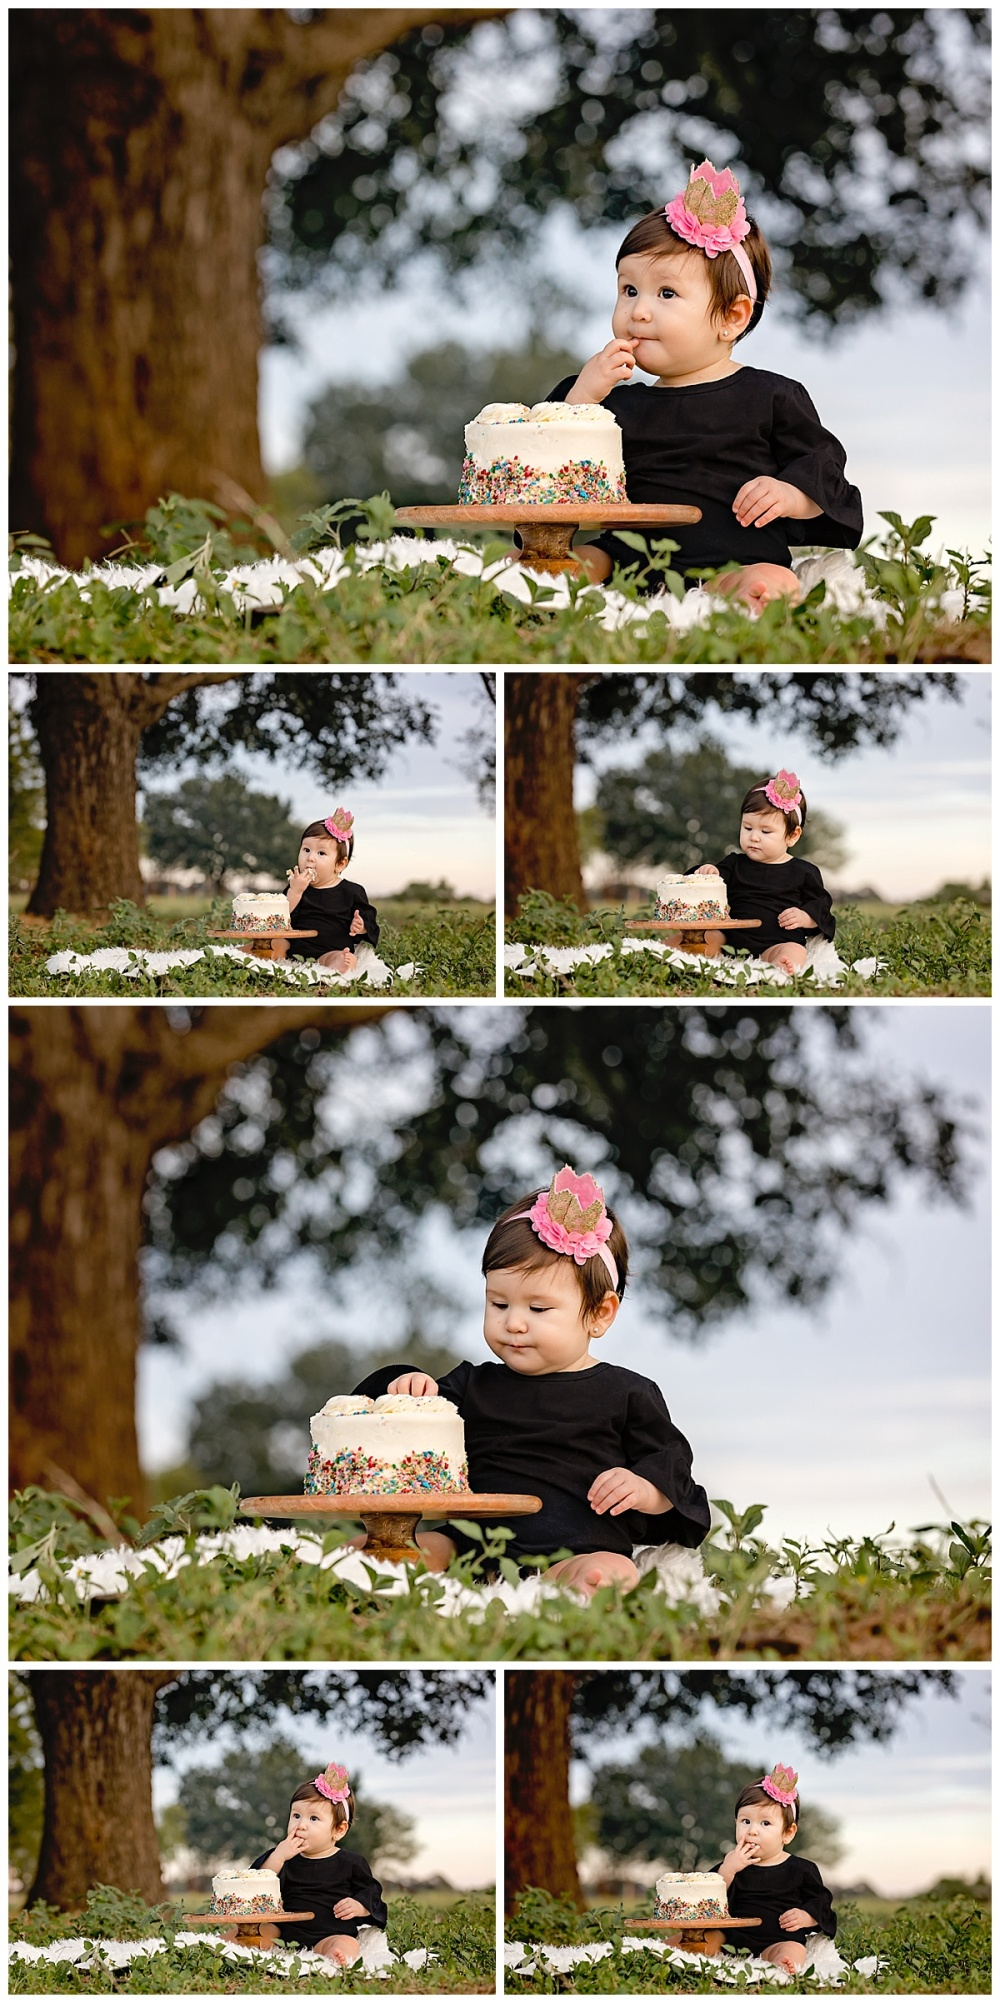 Family-Photographer-LaVernia-Texas-Fall-Carly-Barton-Photography-Zadie-Cake-Smash_0010.jpg